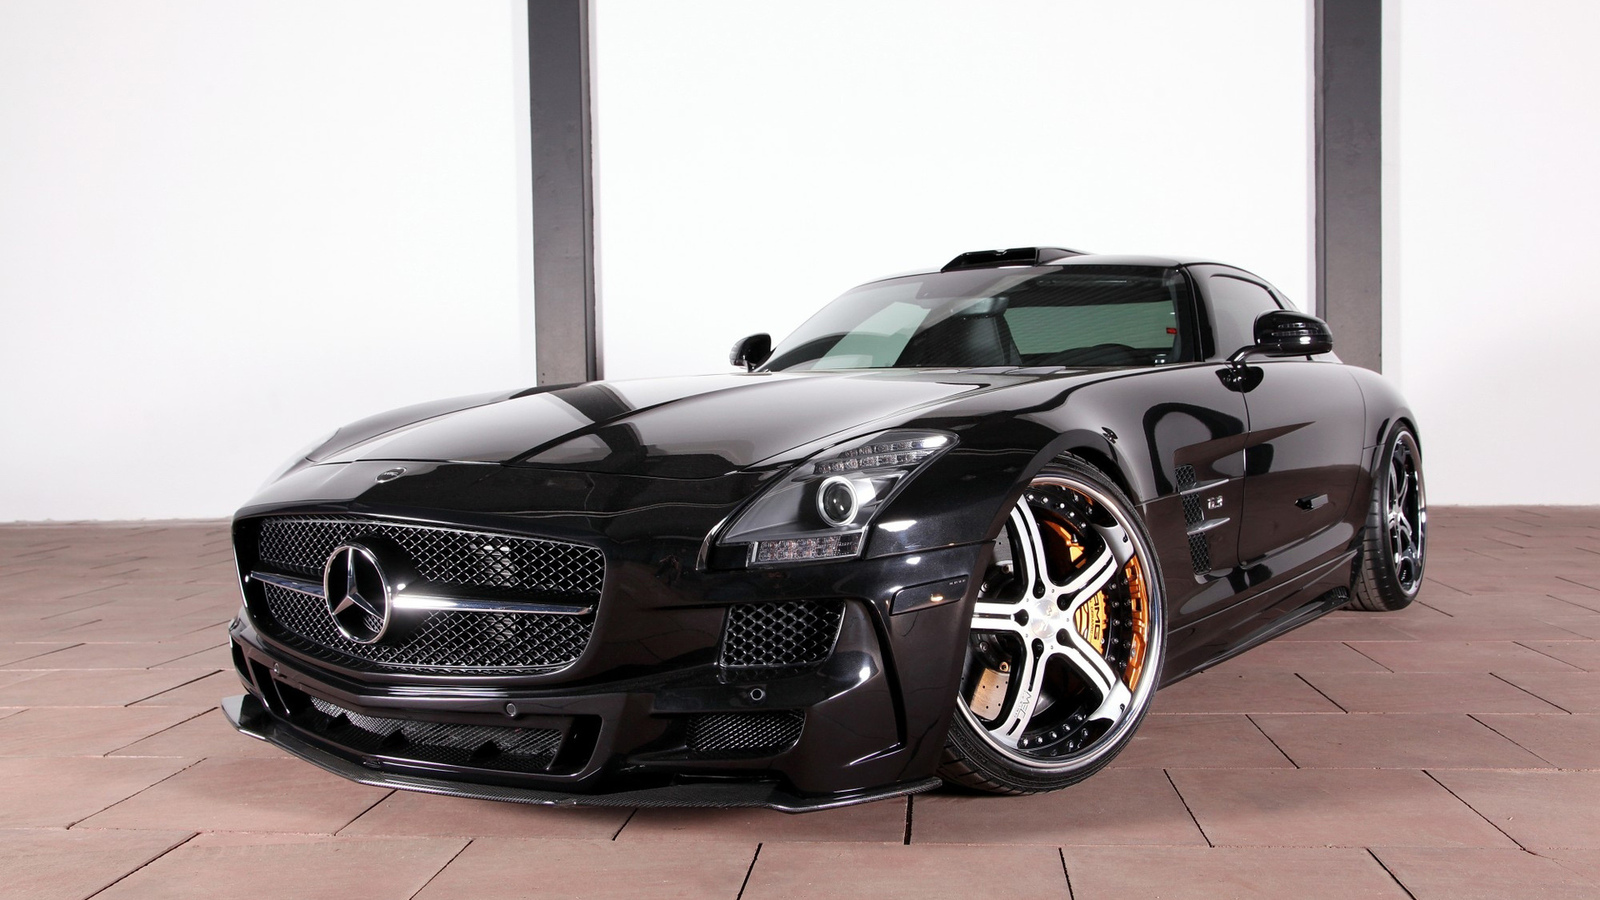 sls, v-8, tuner, mec design, coupe, amg, germany, диски, mercedes-benz, мерседес